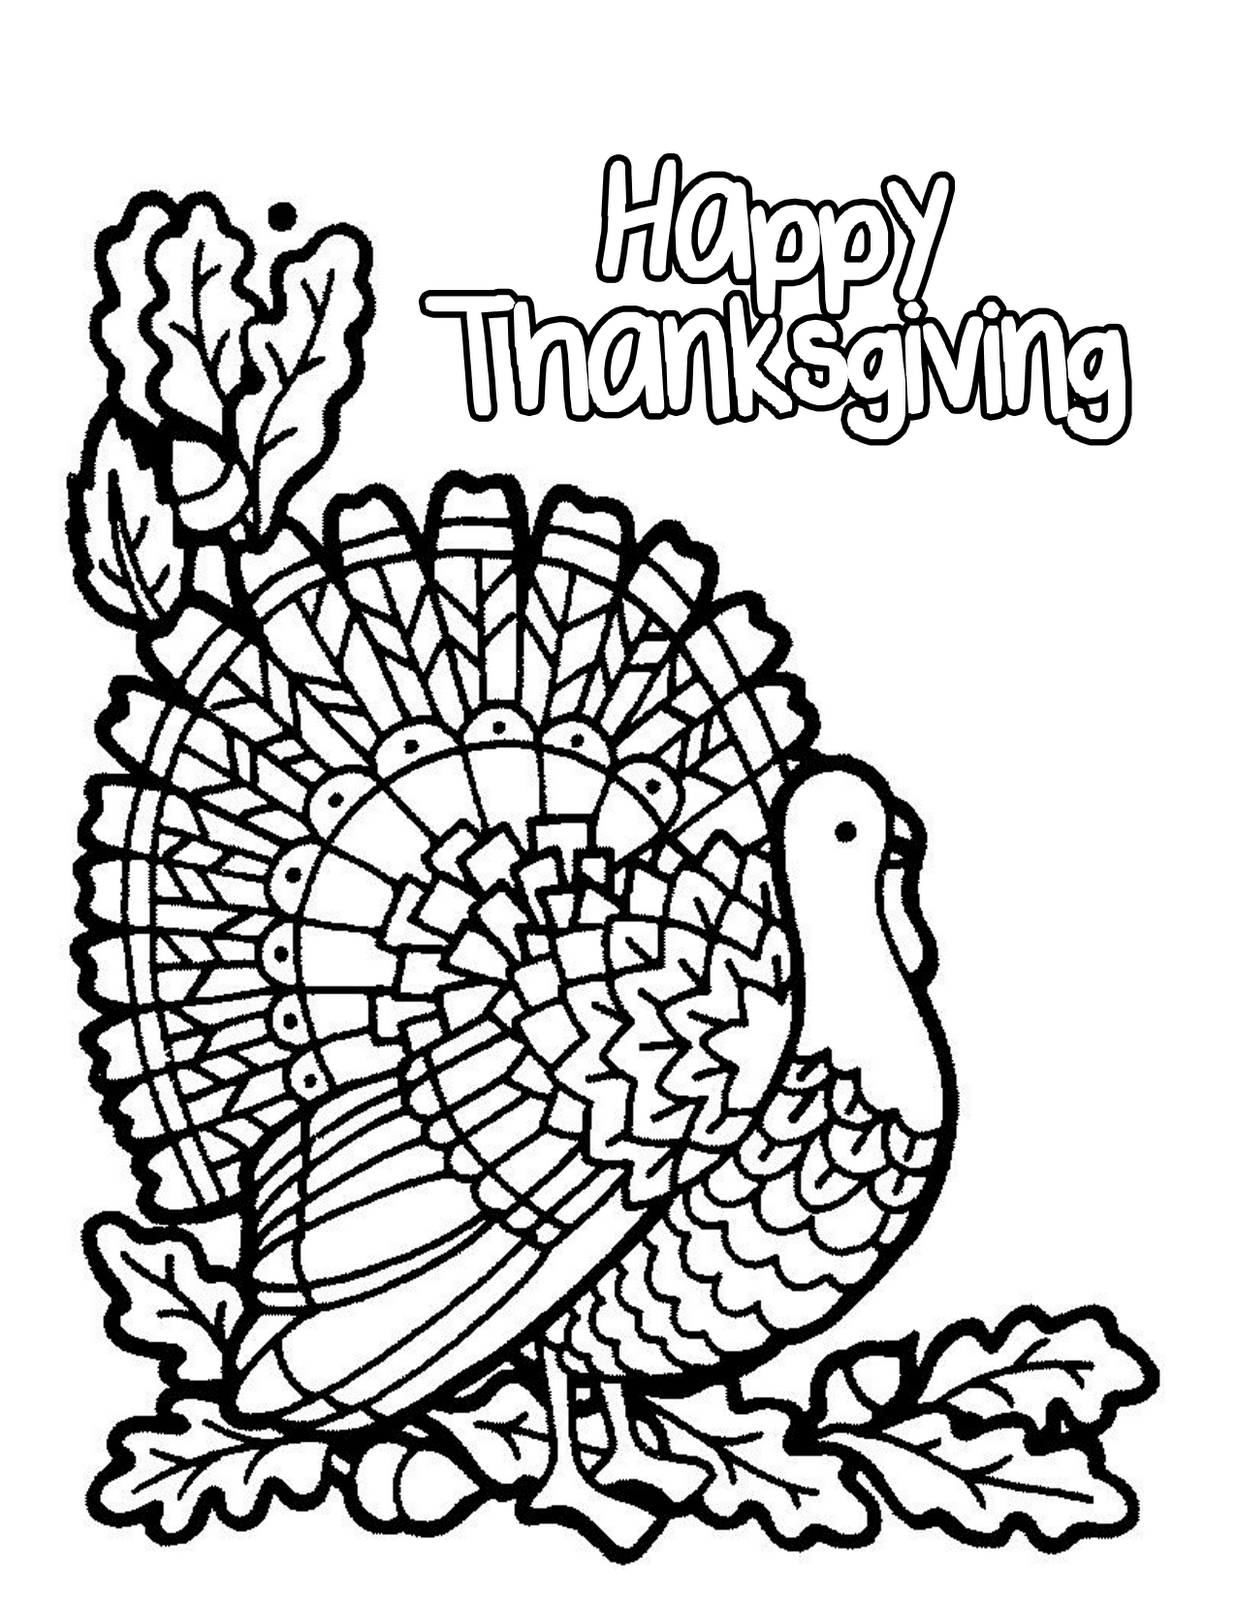 1236x1600 Thanksgiving Coloring Pages For Adults